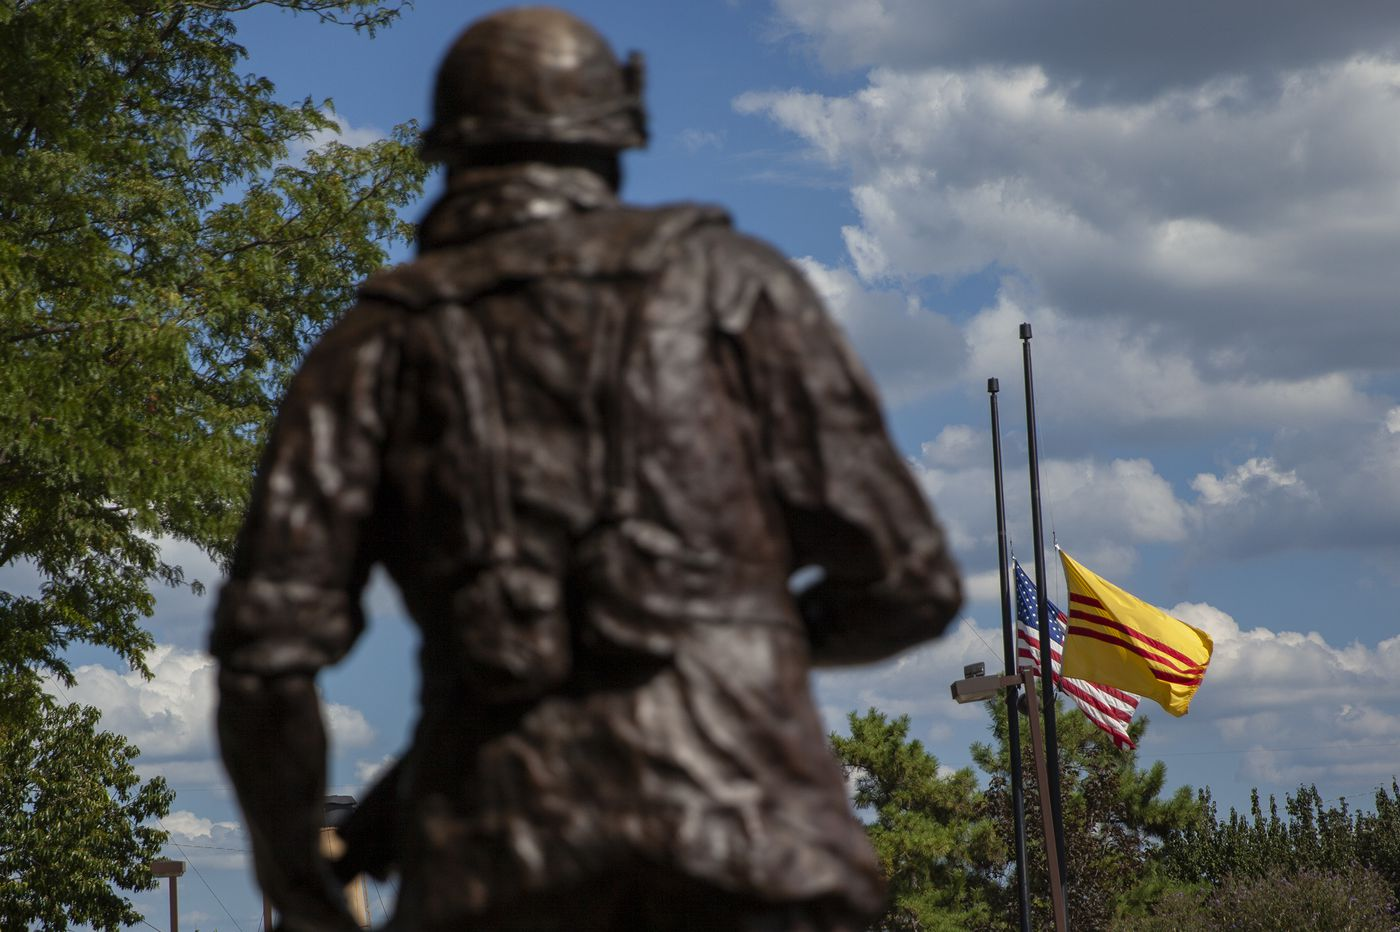 After the parades, invest in Philly's veterans